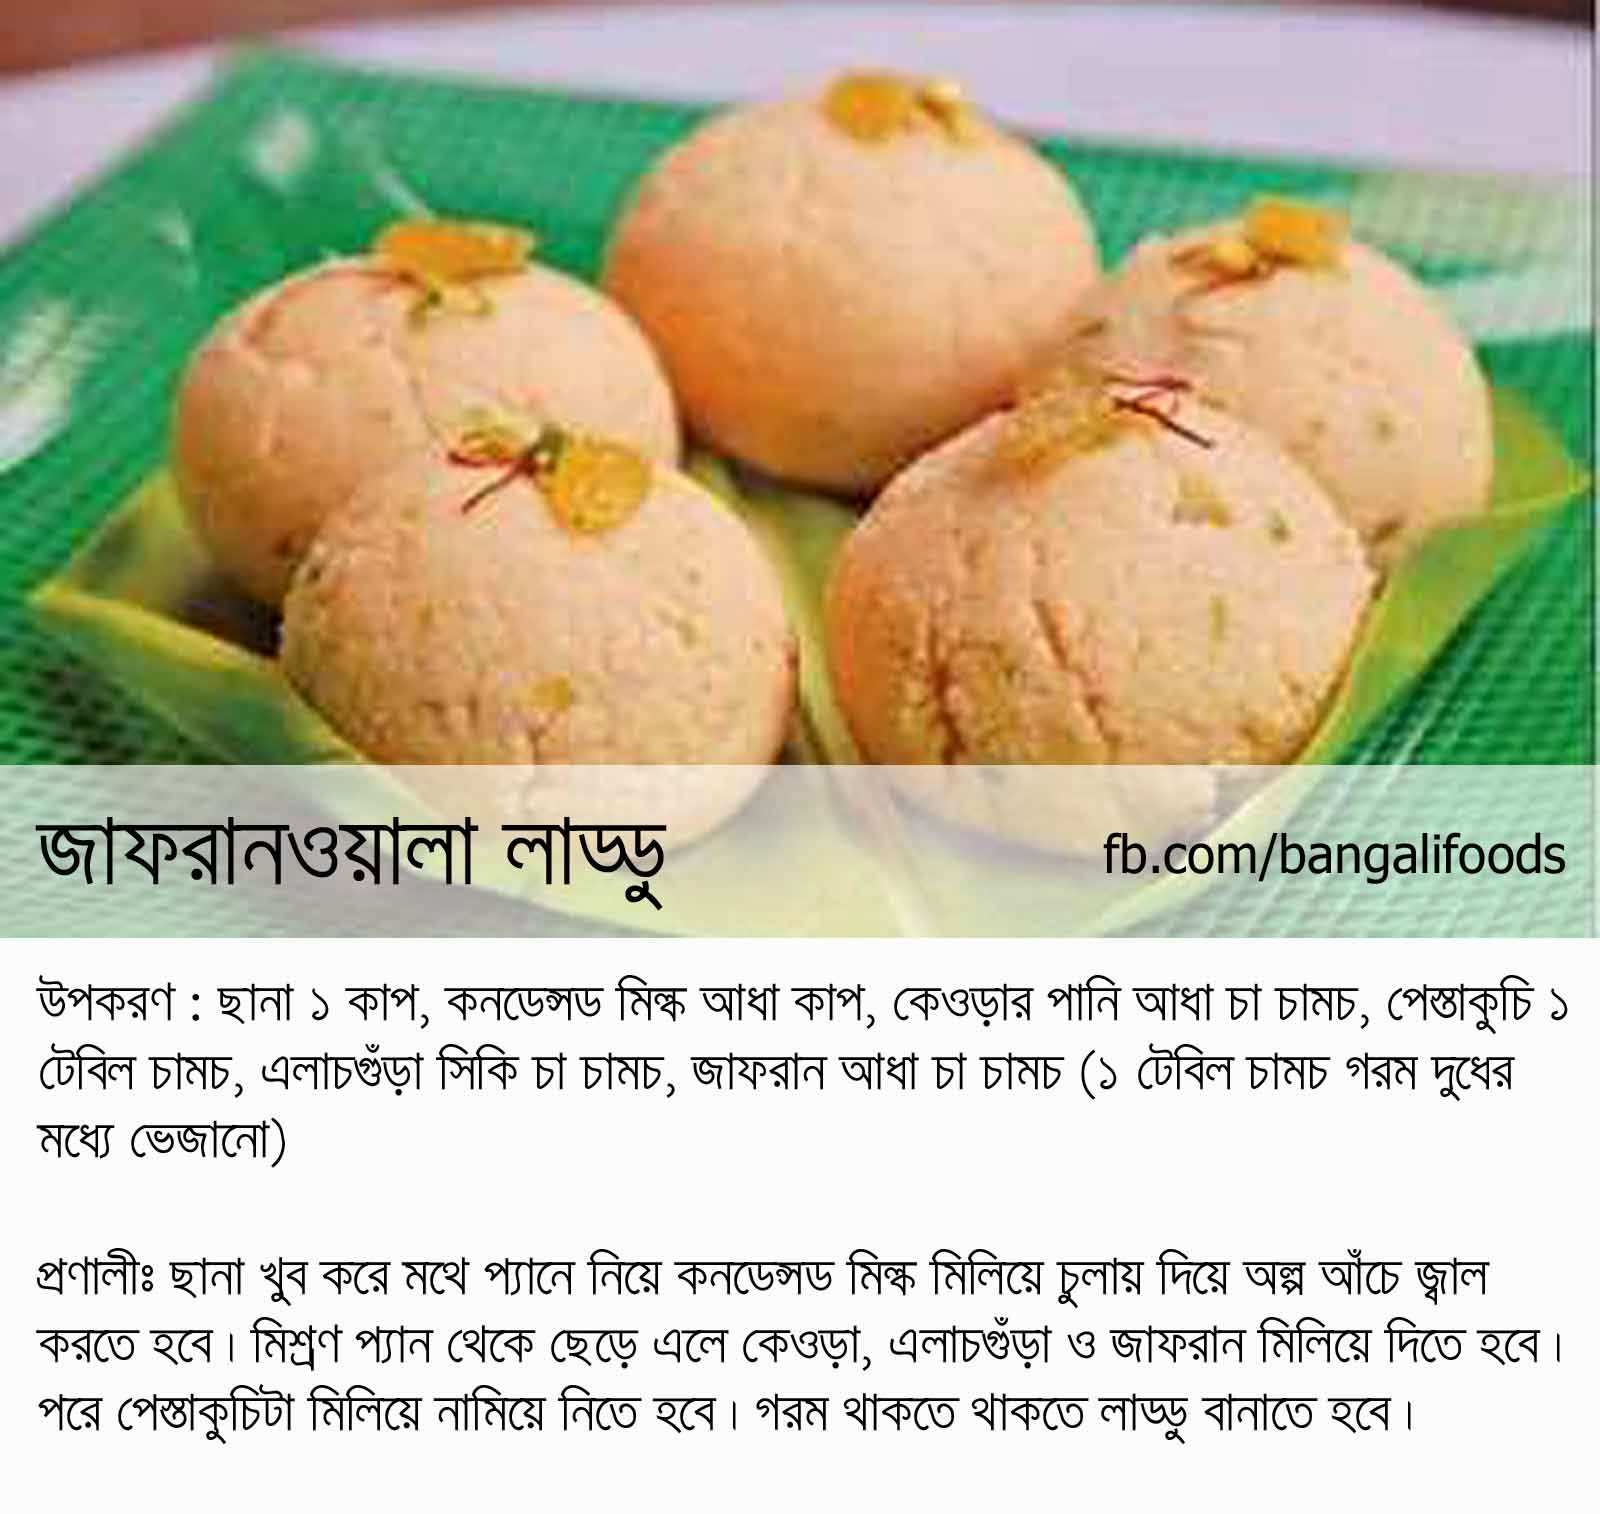 Bangali foods laddu recipes forumfinder Image collections